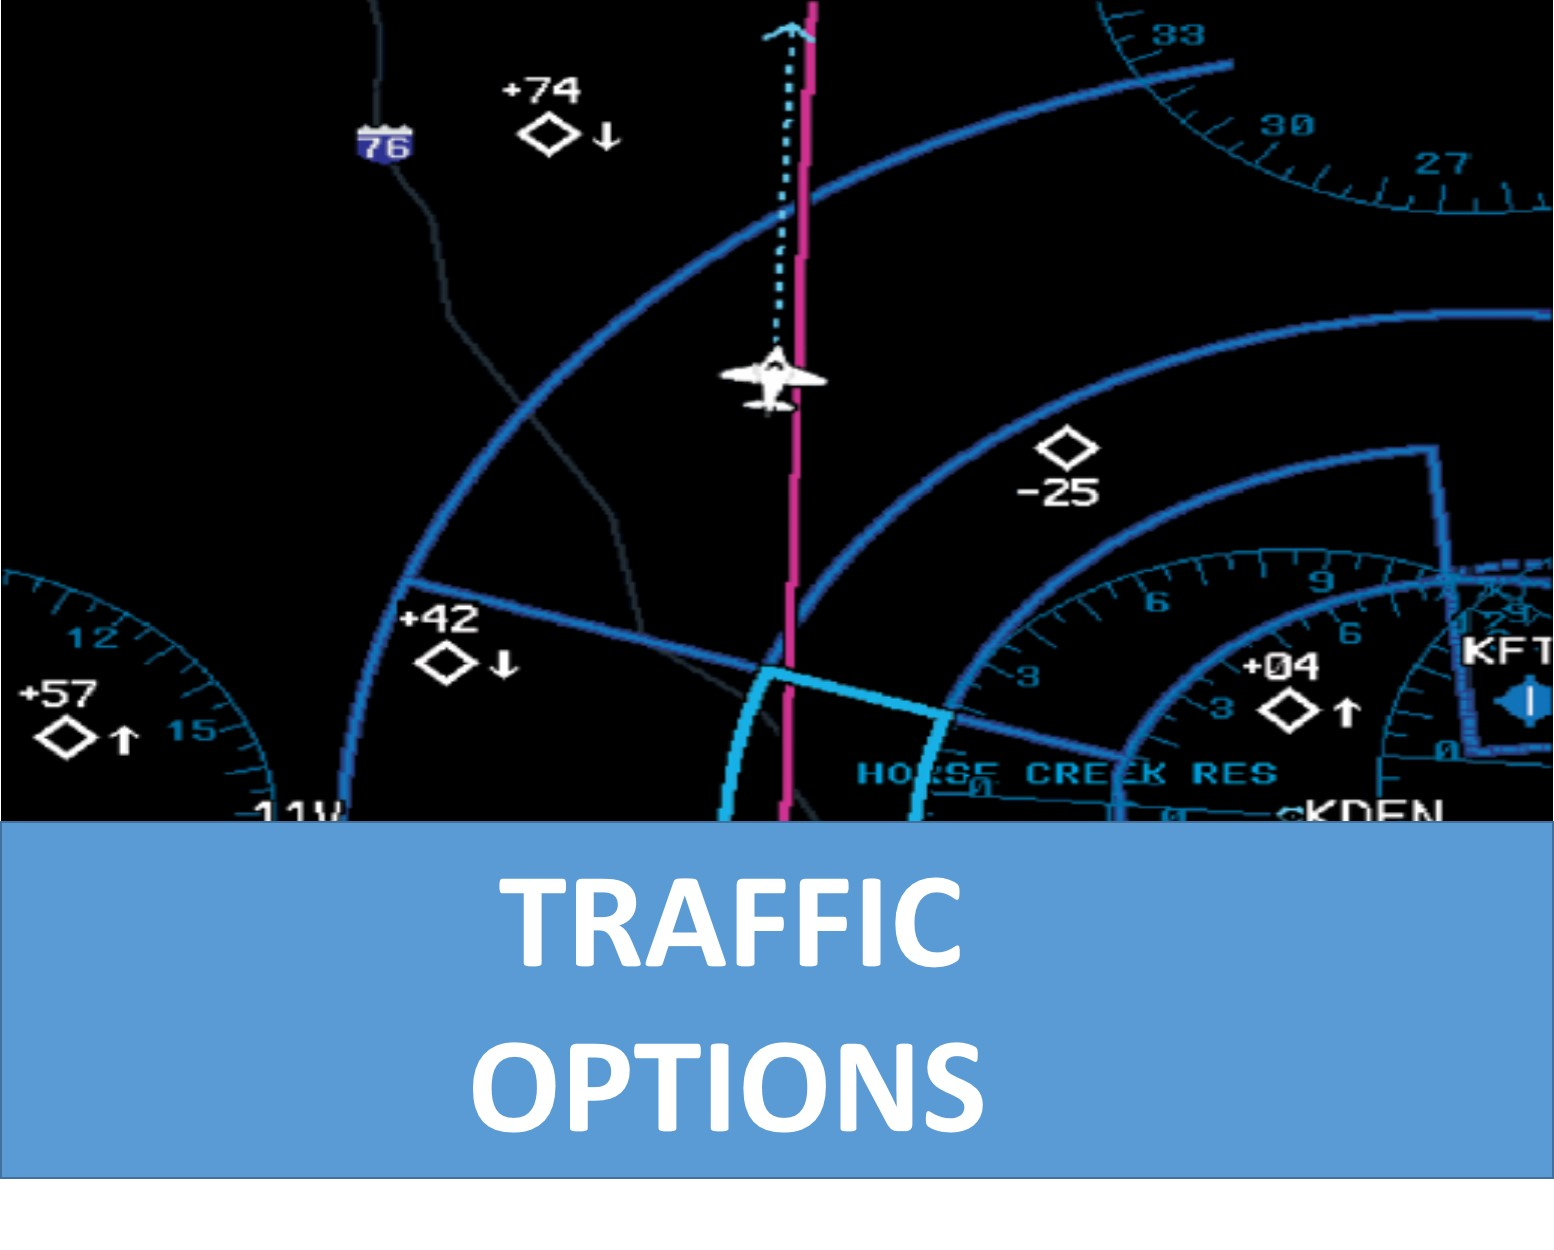 Traffic options